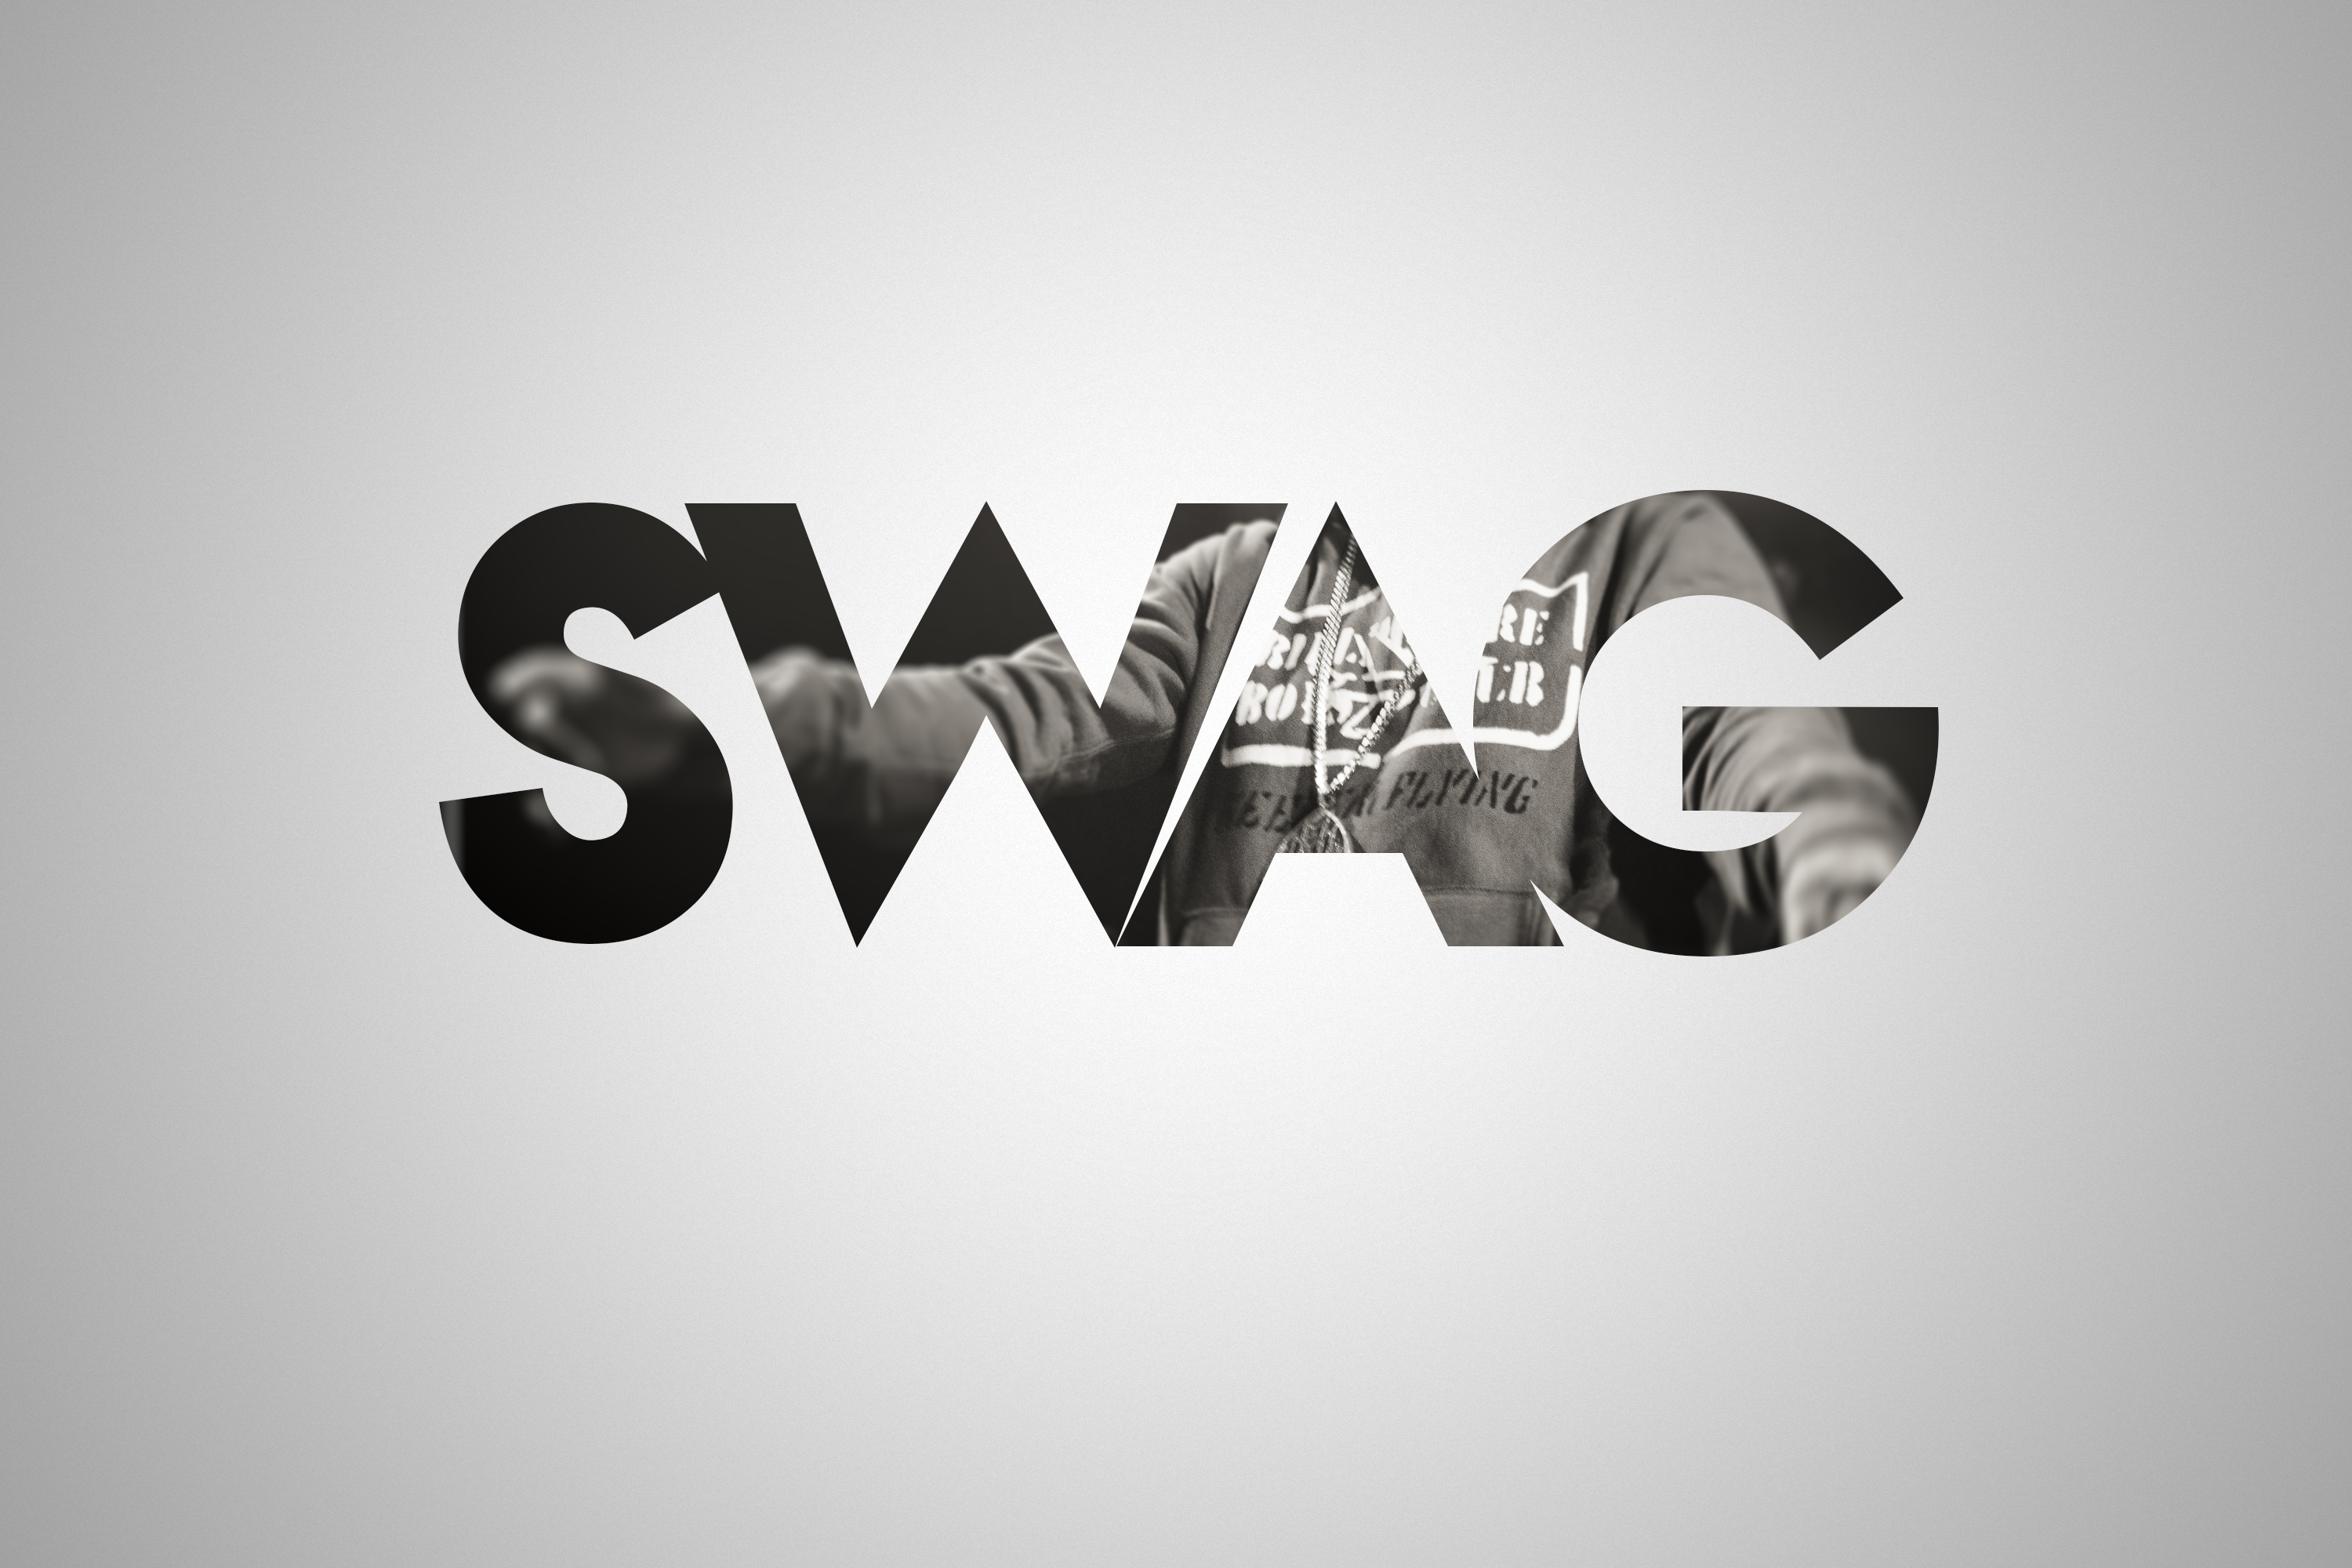 Awesome Swag Photos and Pictures, Swag High Definition Wallpapers